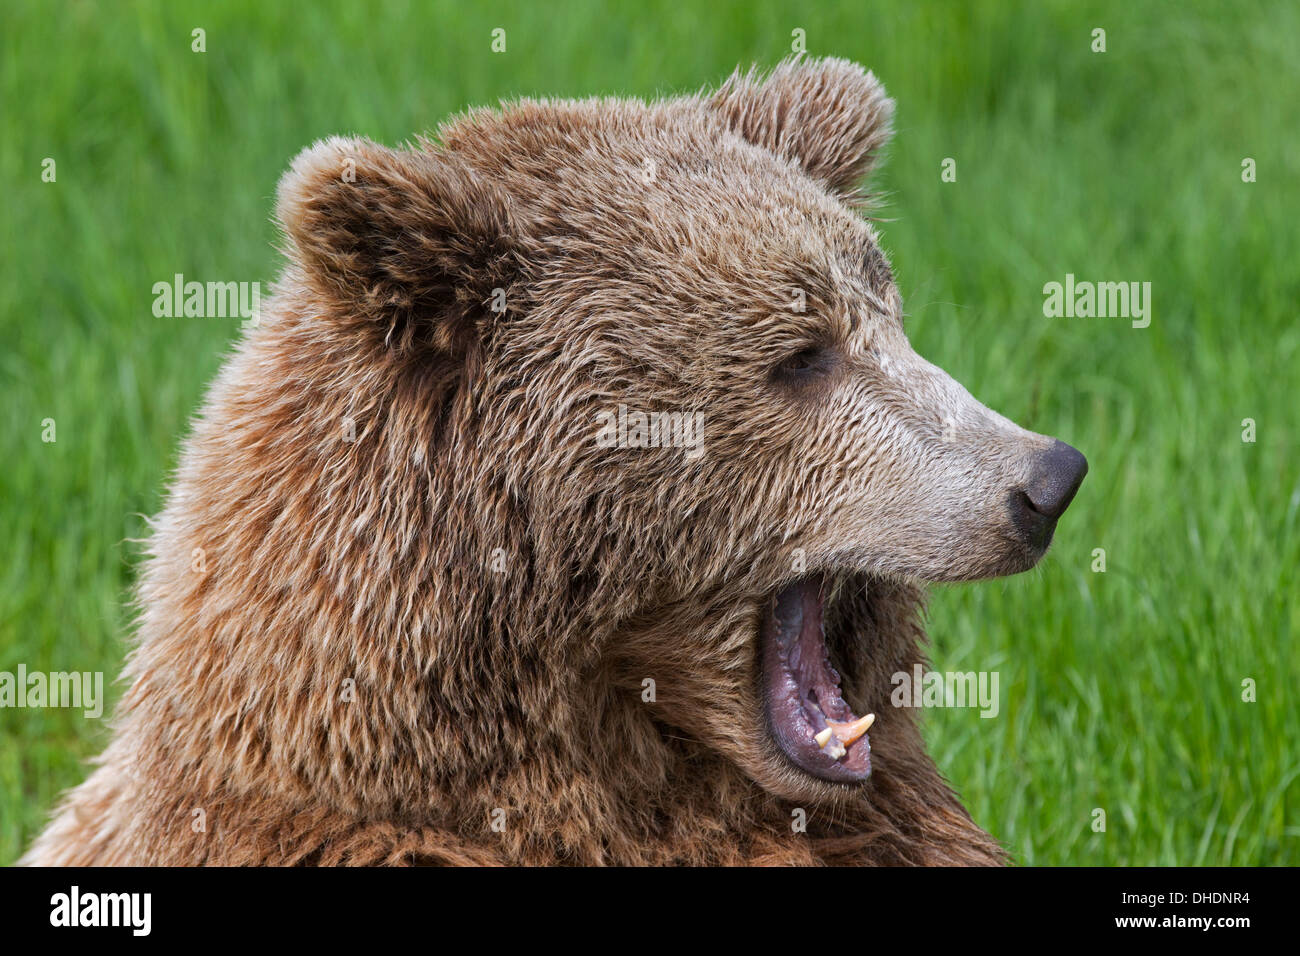 Close up of Eurasian brown bear / European brown (Ursus arctos arctos) yawning /  growling in grassland - Stock Image